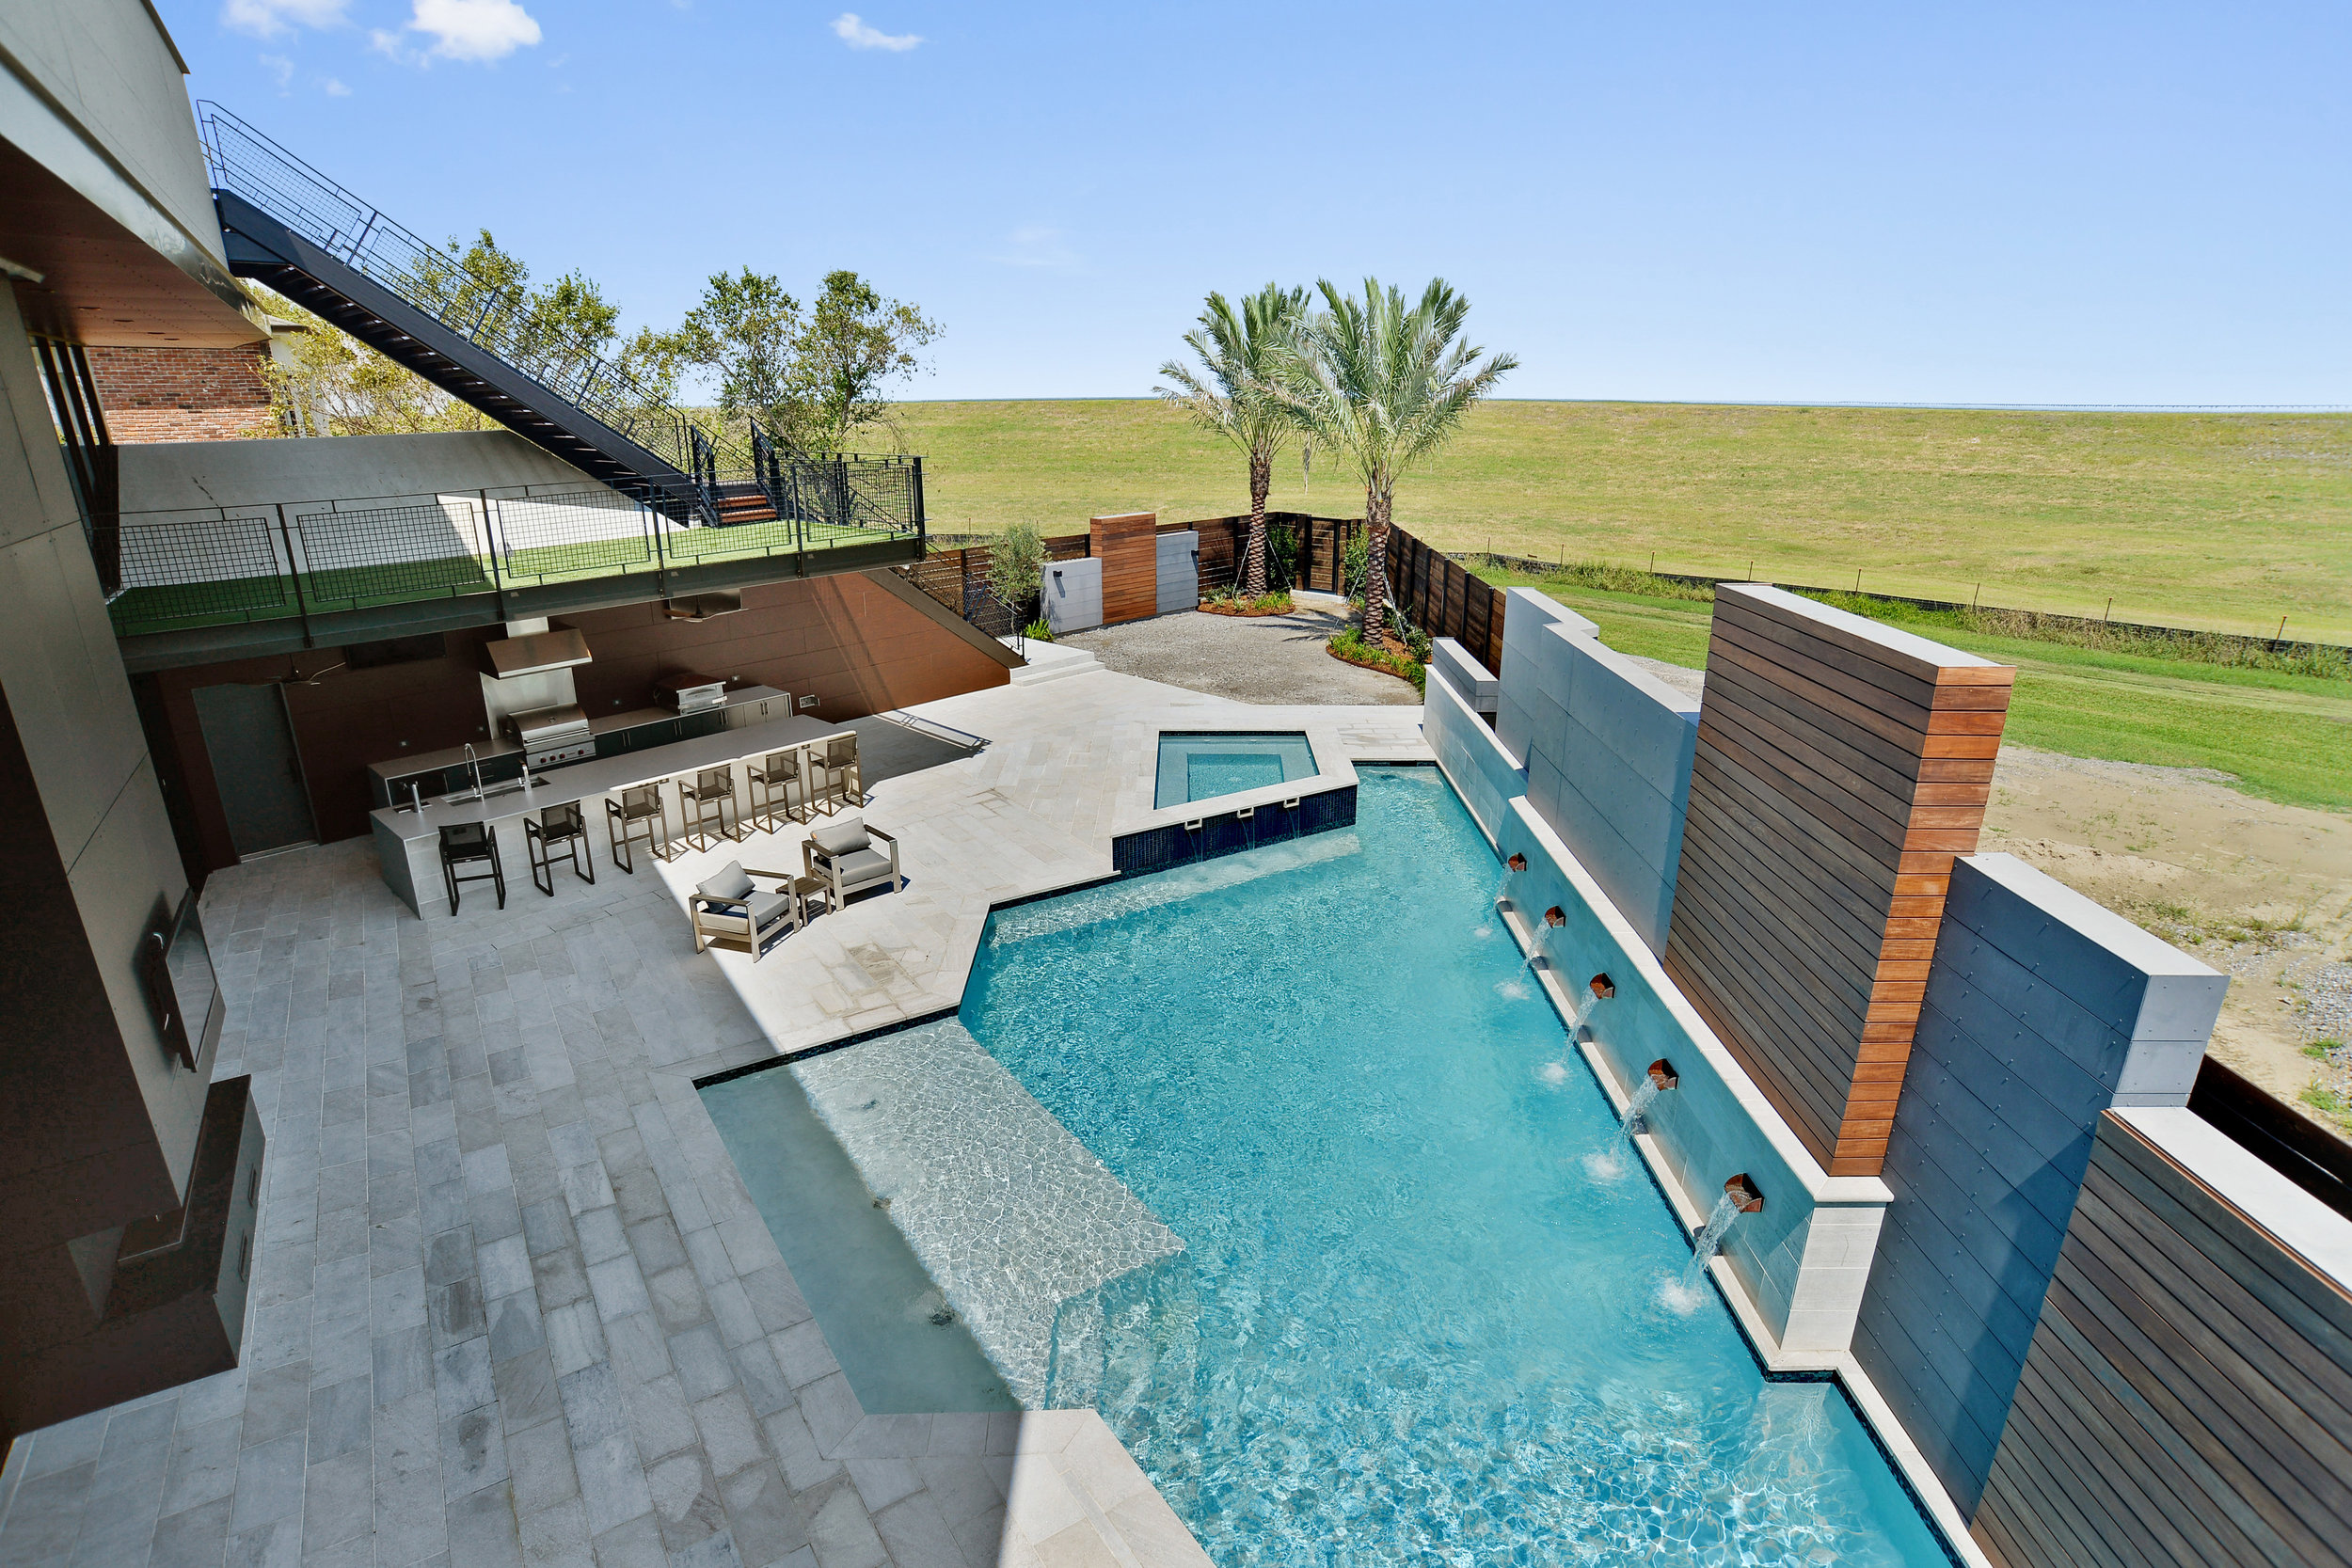 Modern Pool and Outdoor Kitchen